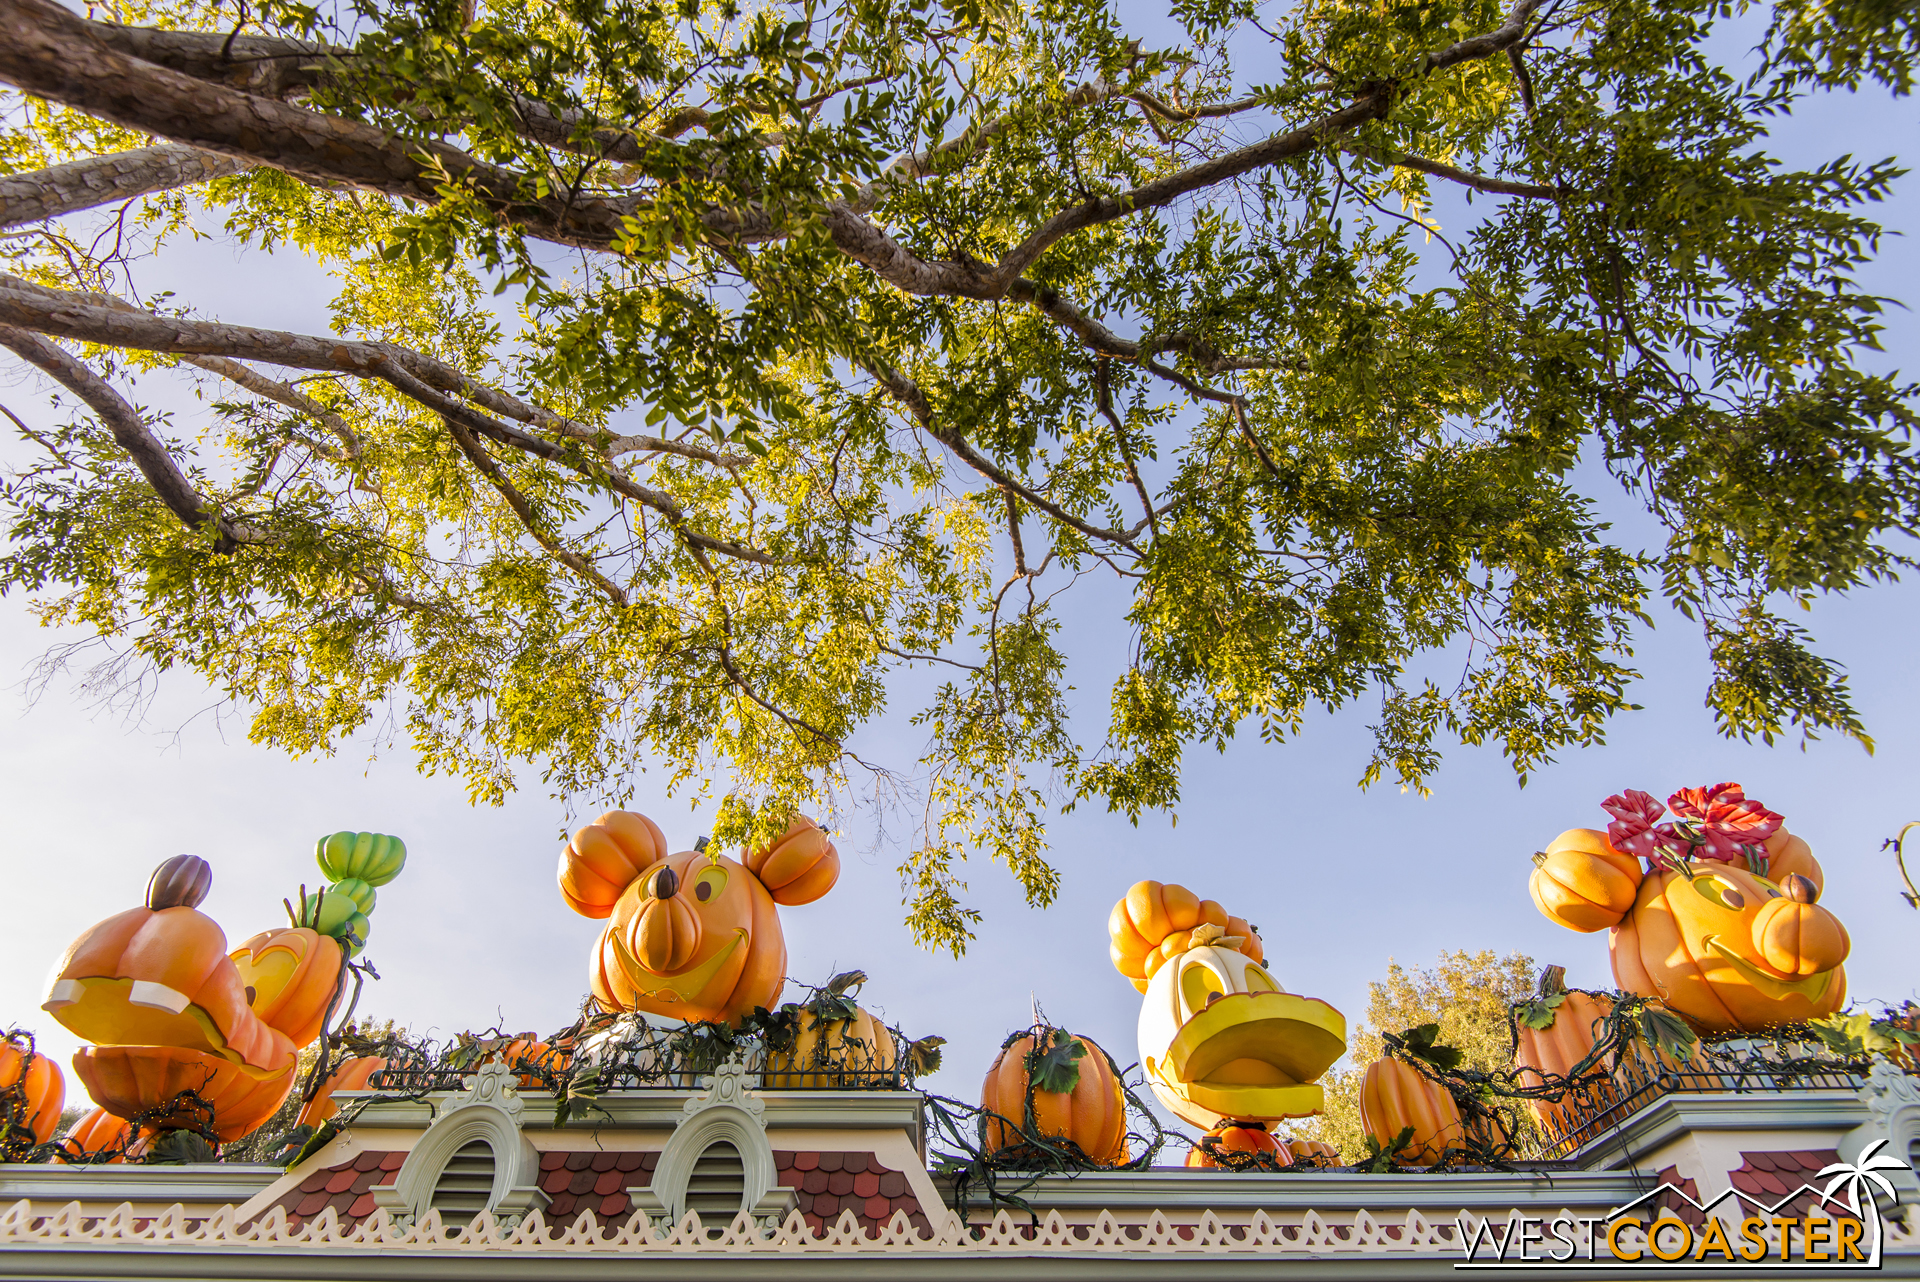 Those pumpkin Disney characters are back across the entrance gates of Disneyland Park.